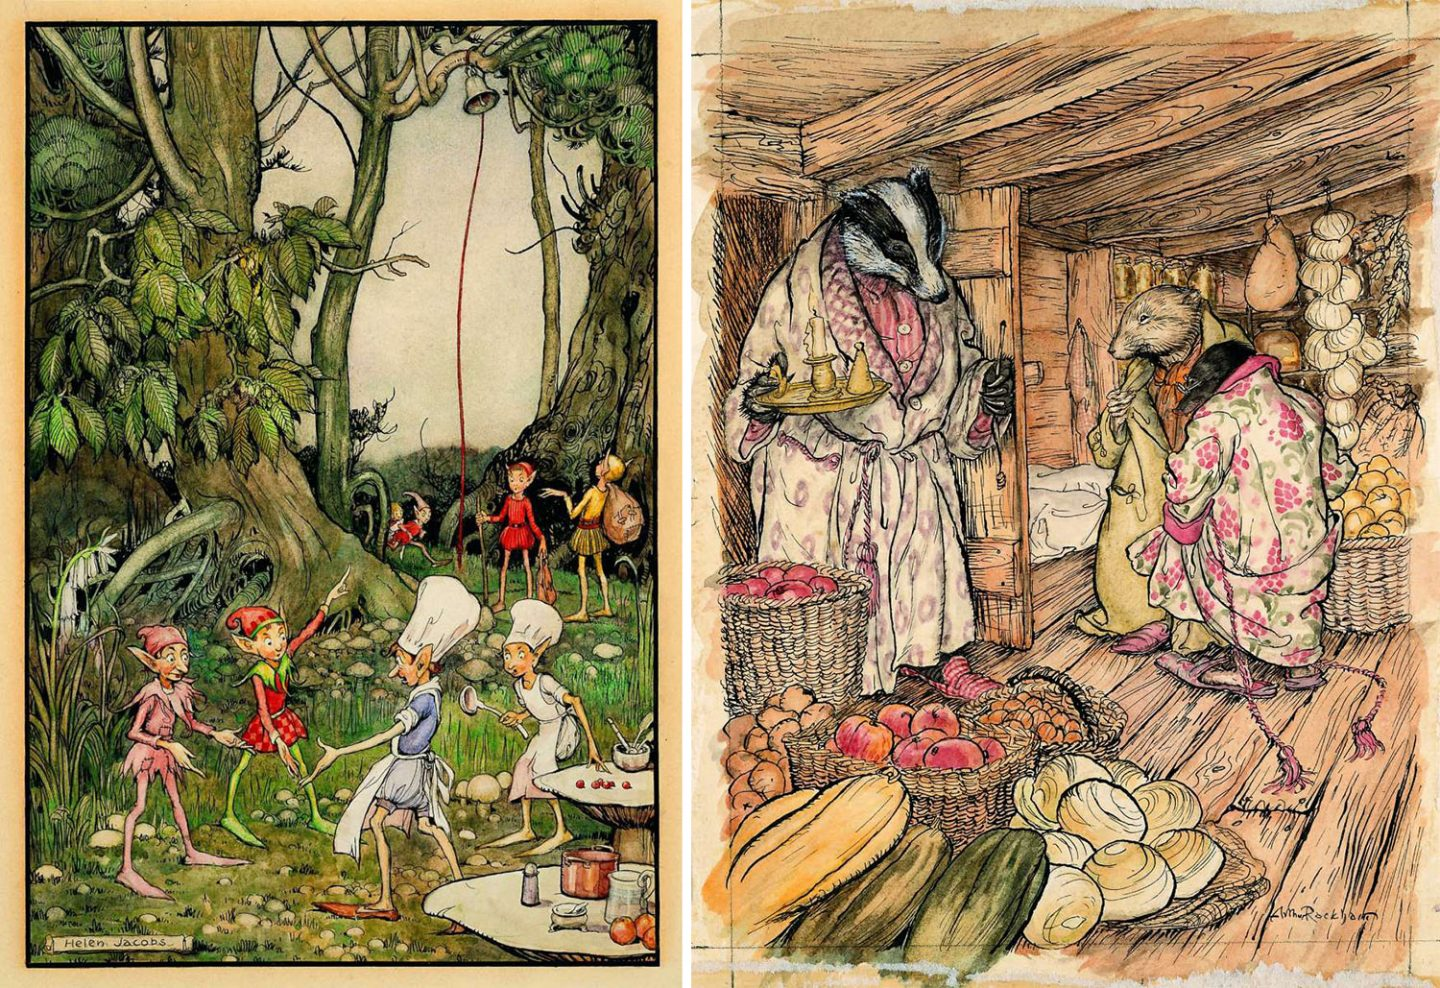 Example of artwork by Helen Mary Jacobs (left) and Arthur Rackham that would be part of the museum.